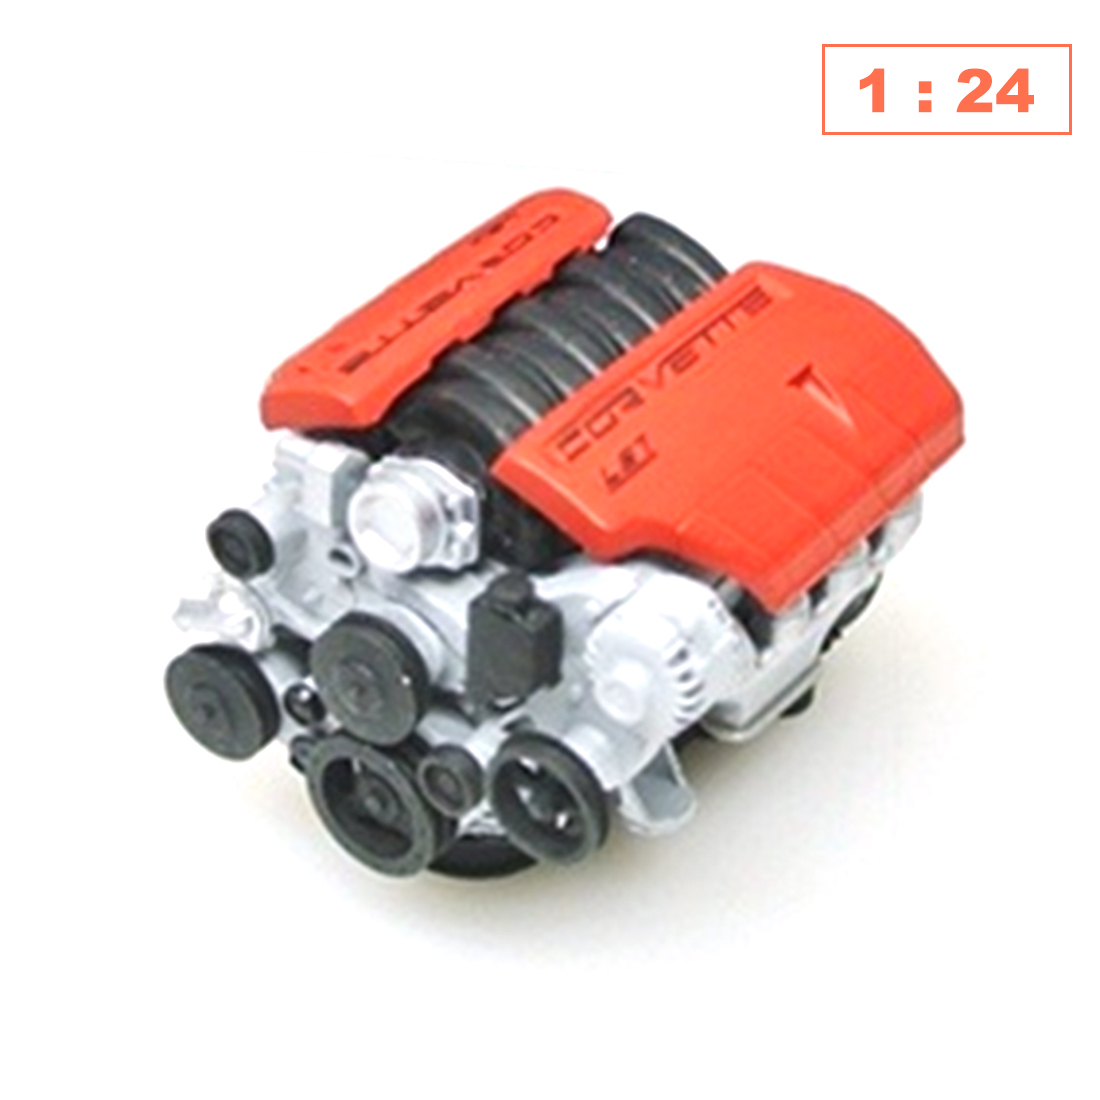 1:18 /1:10 /1:24 DIY Simulated Static Model Car Engine For Is7 Model Accessories -Black Red